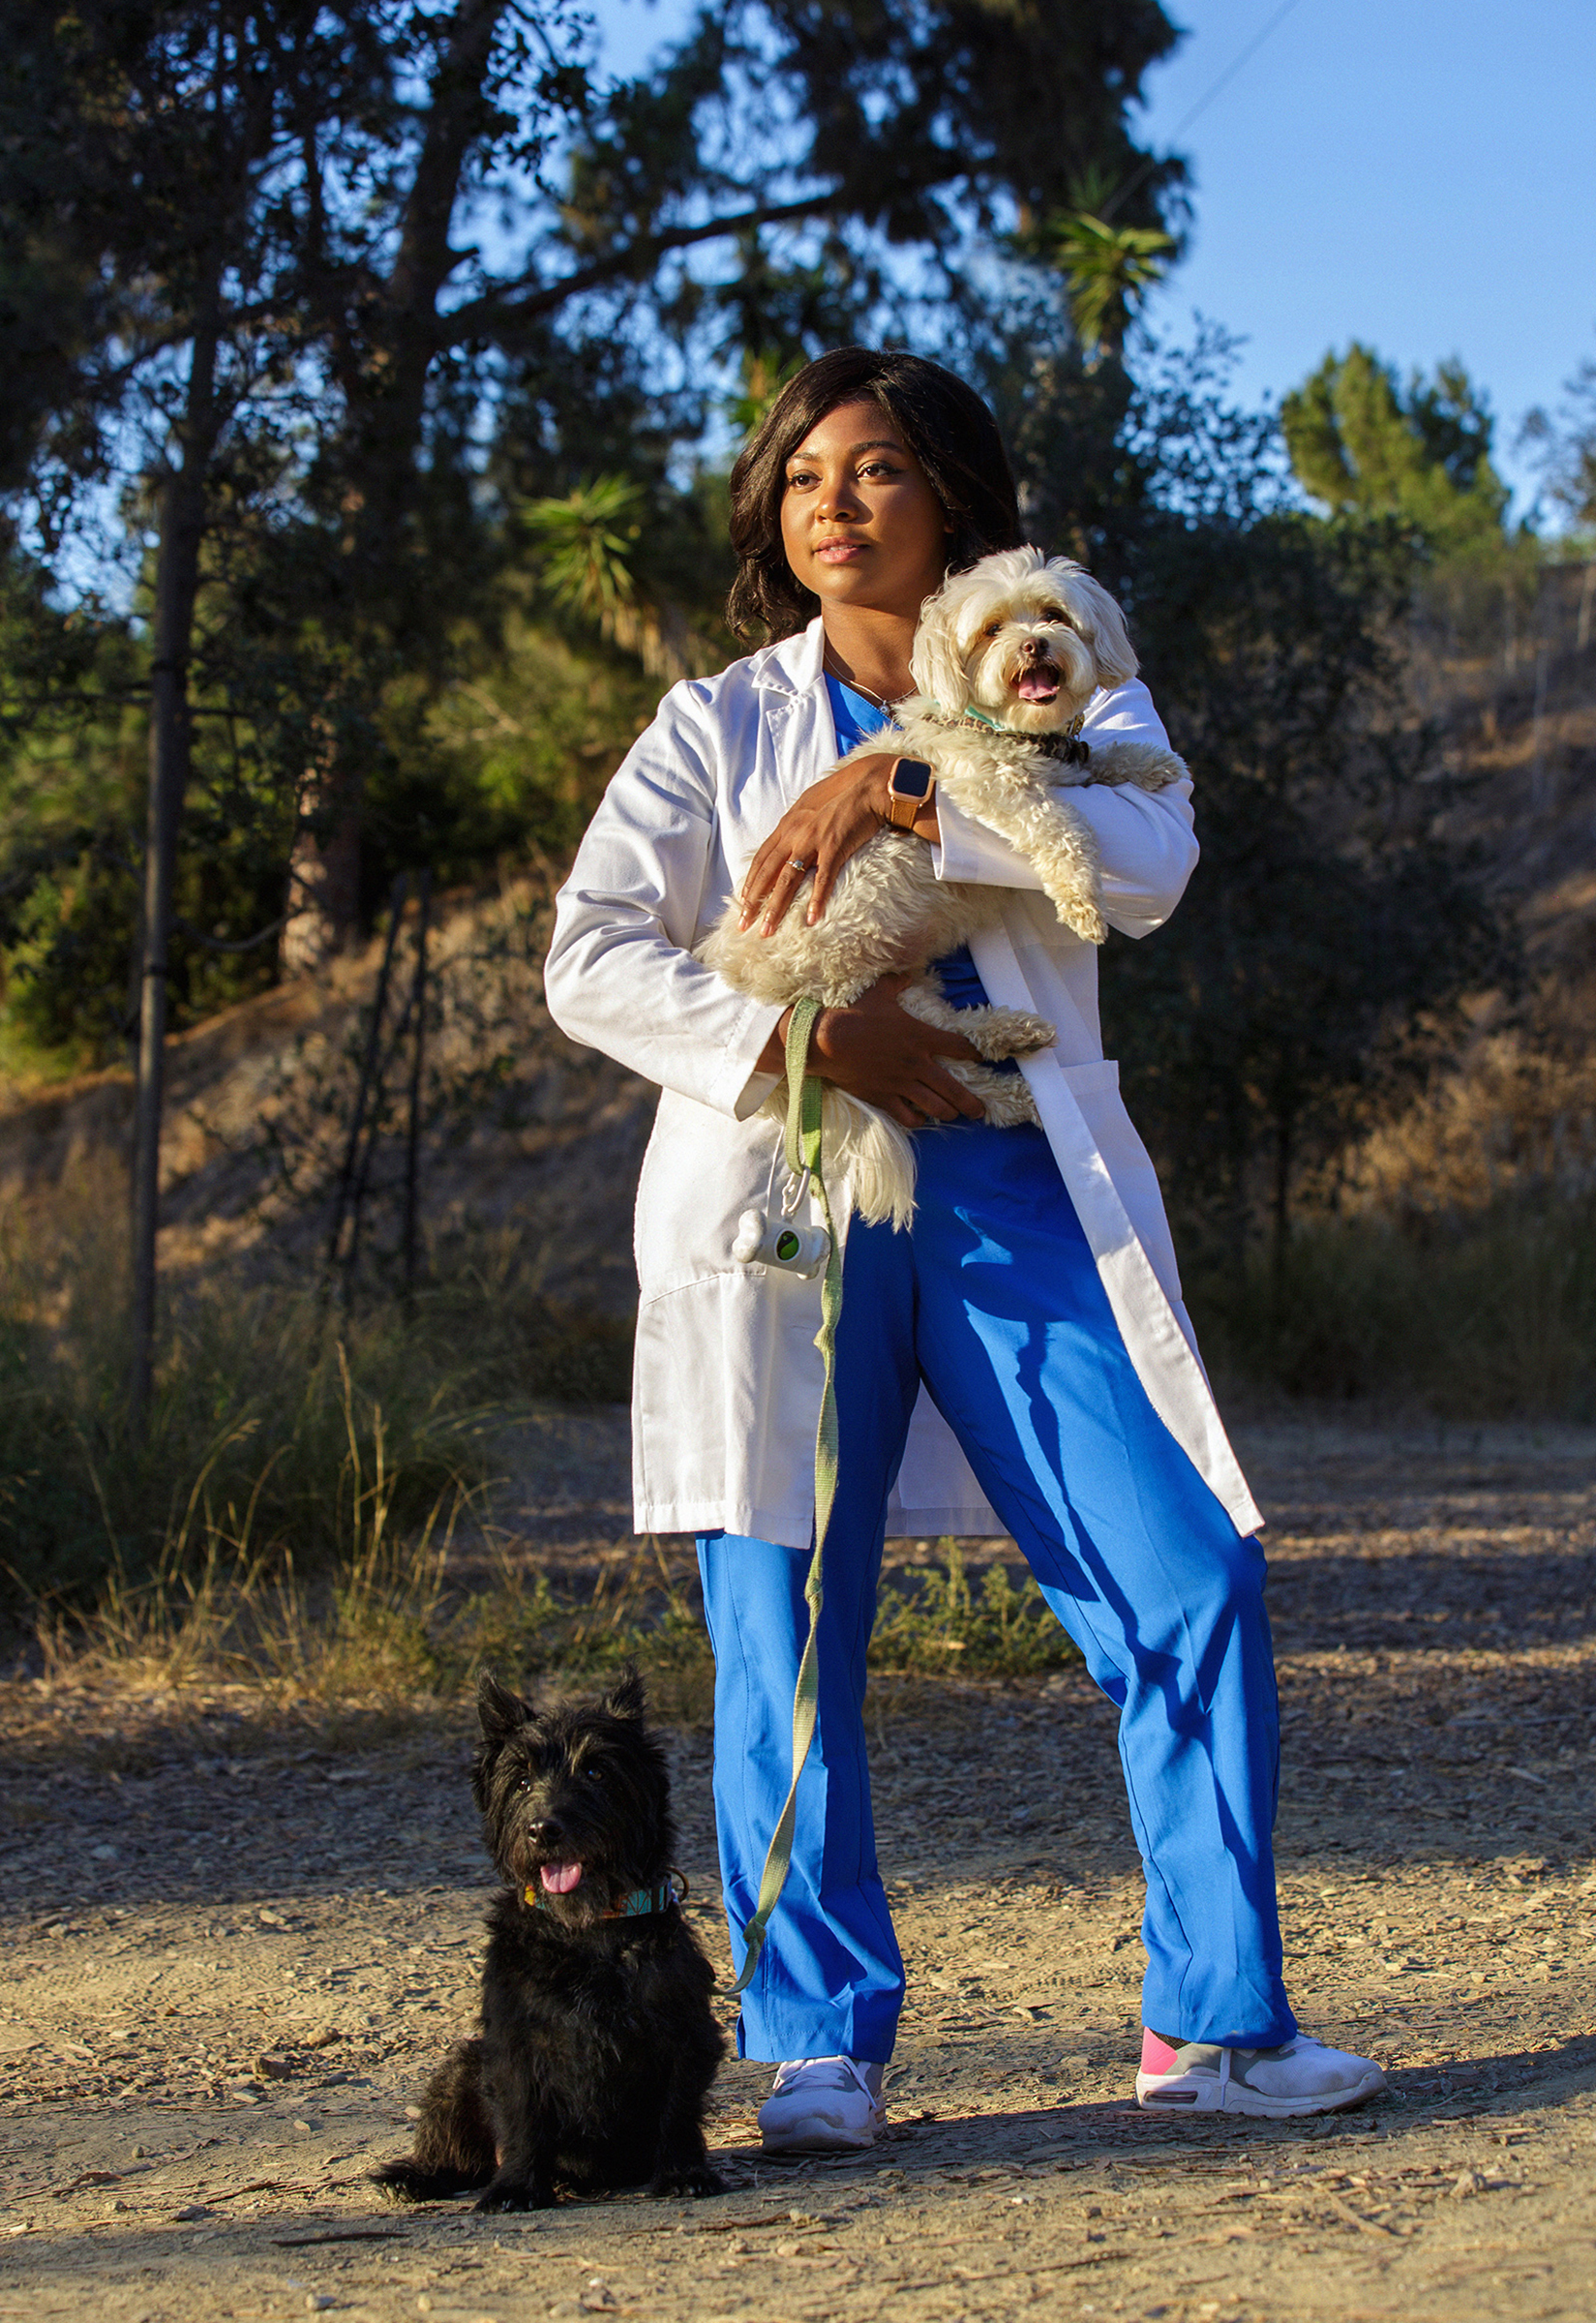 Tierra Price holds Flossie in her arms while Rocco sits at her feet during a visit to a dog park in Culver City, Calif., on Oct 12.